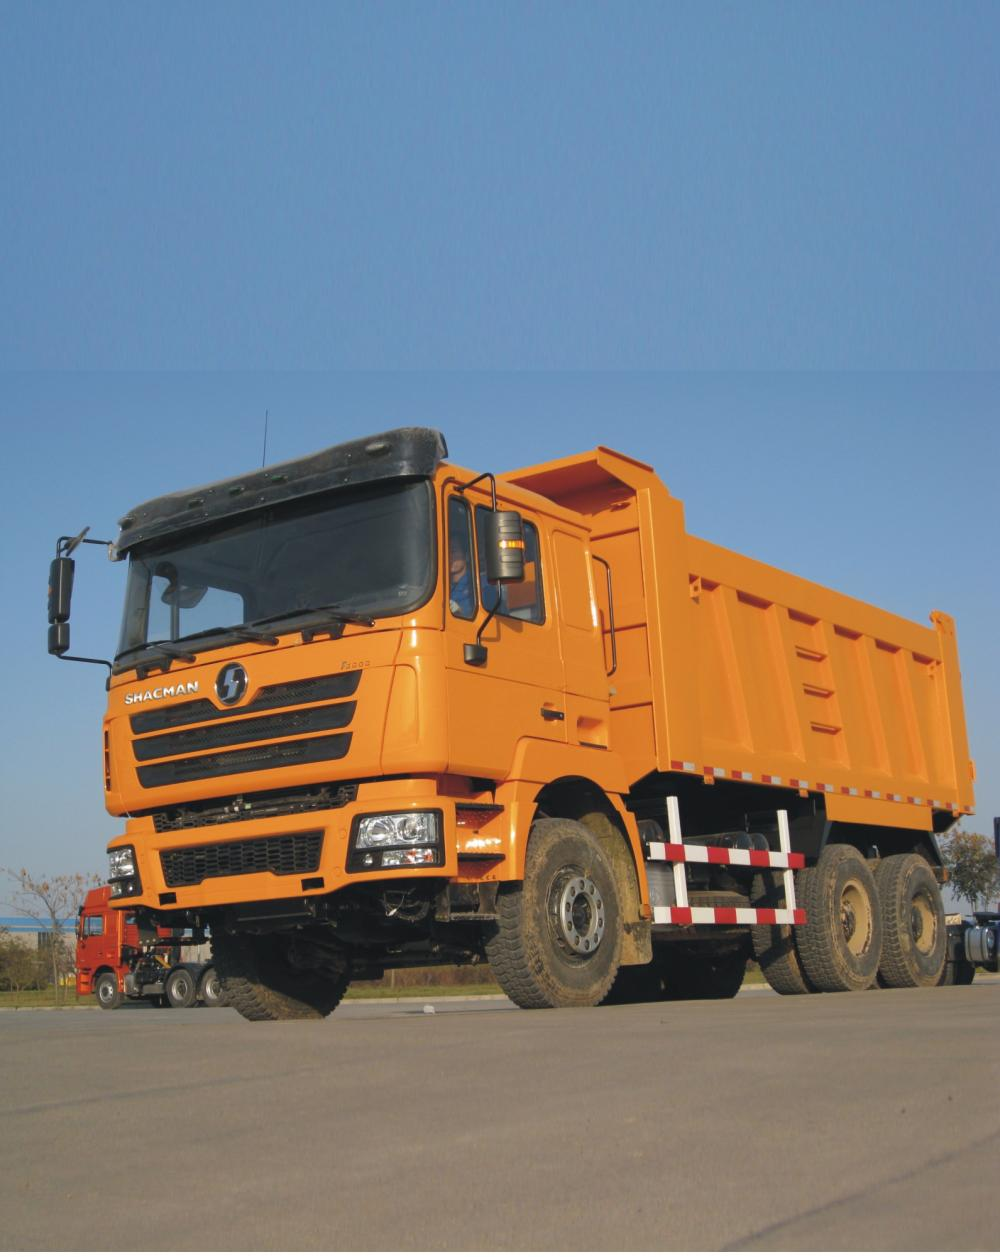 SHACMAN 6X4 DUMP TRUCK 385 HP VỚI COMMINS ENGINE